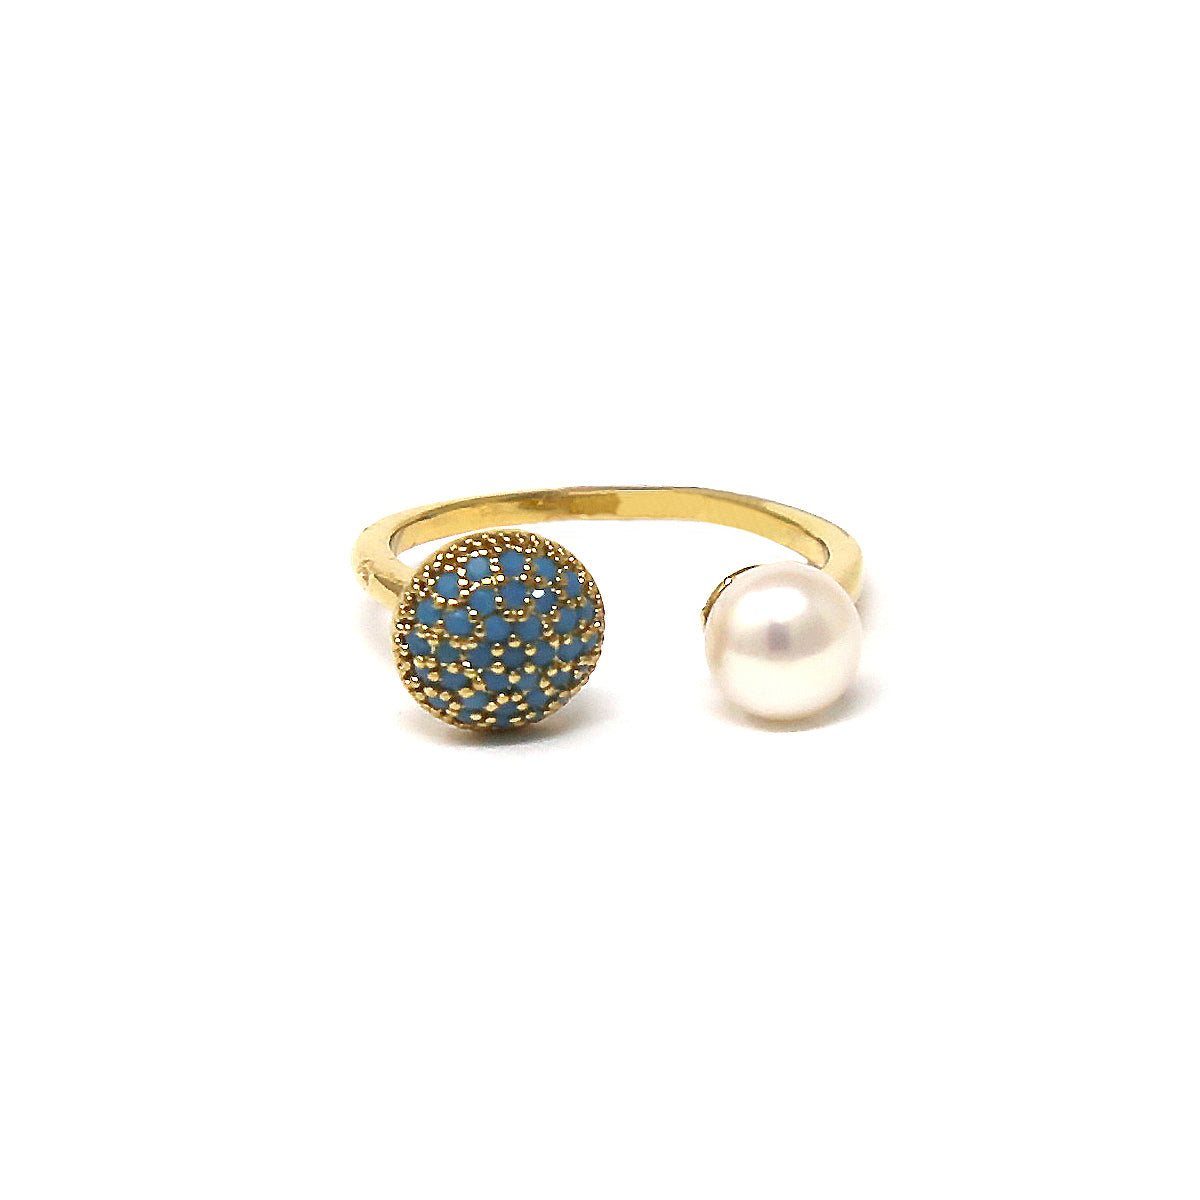 Turquoise Cubic Zirconia Pearl Bead Ring